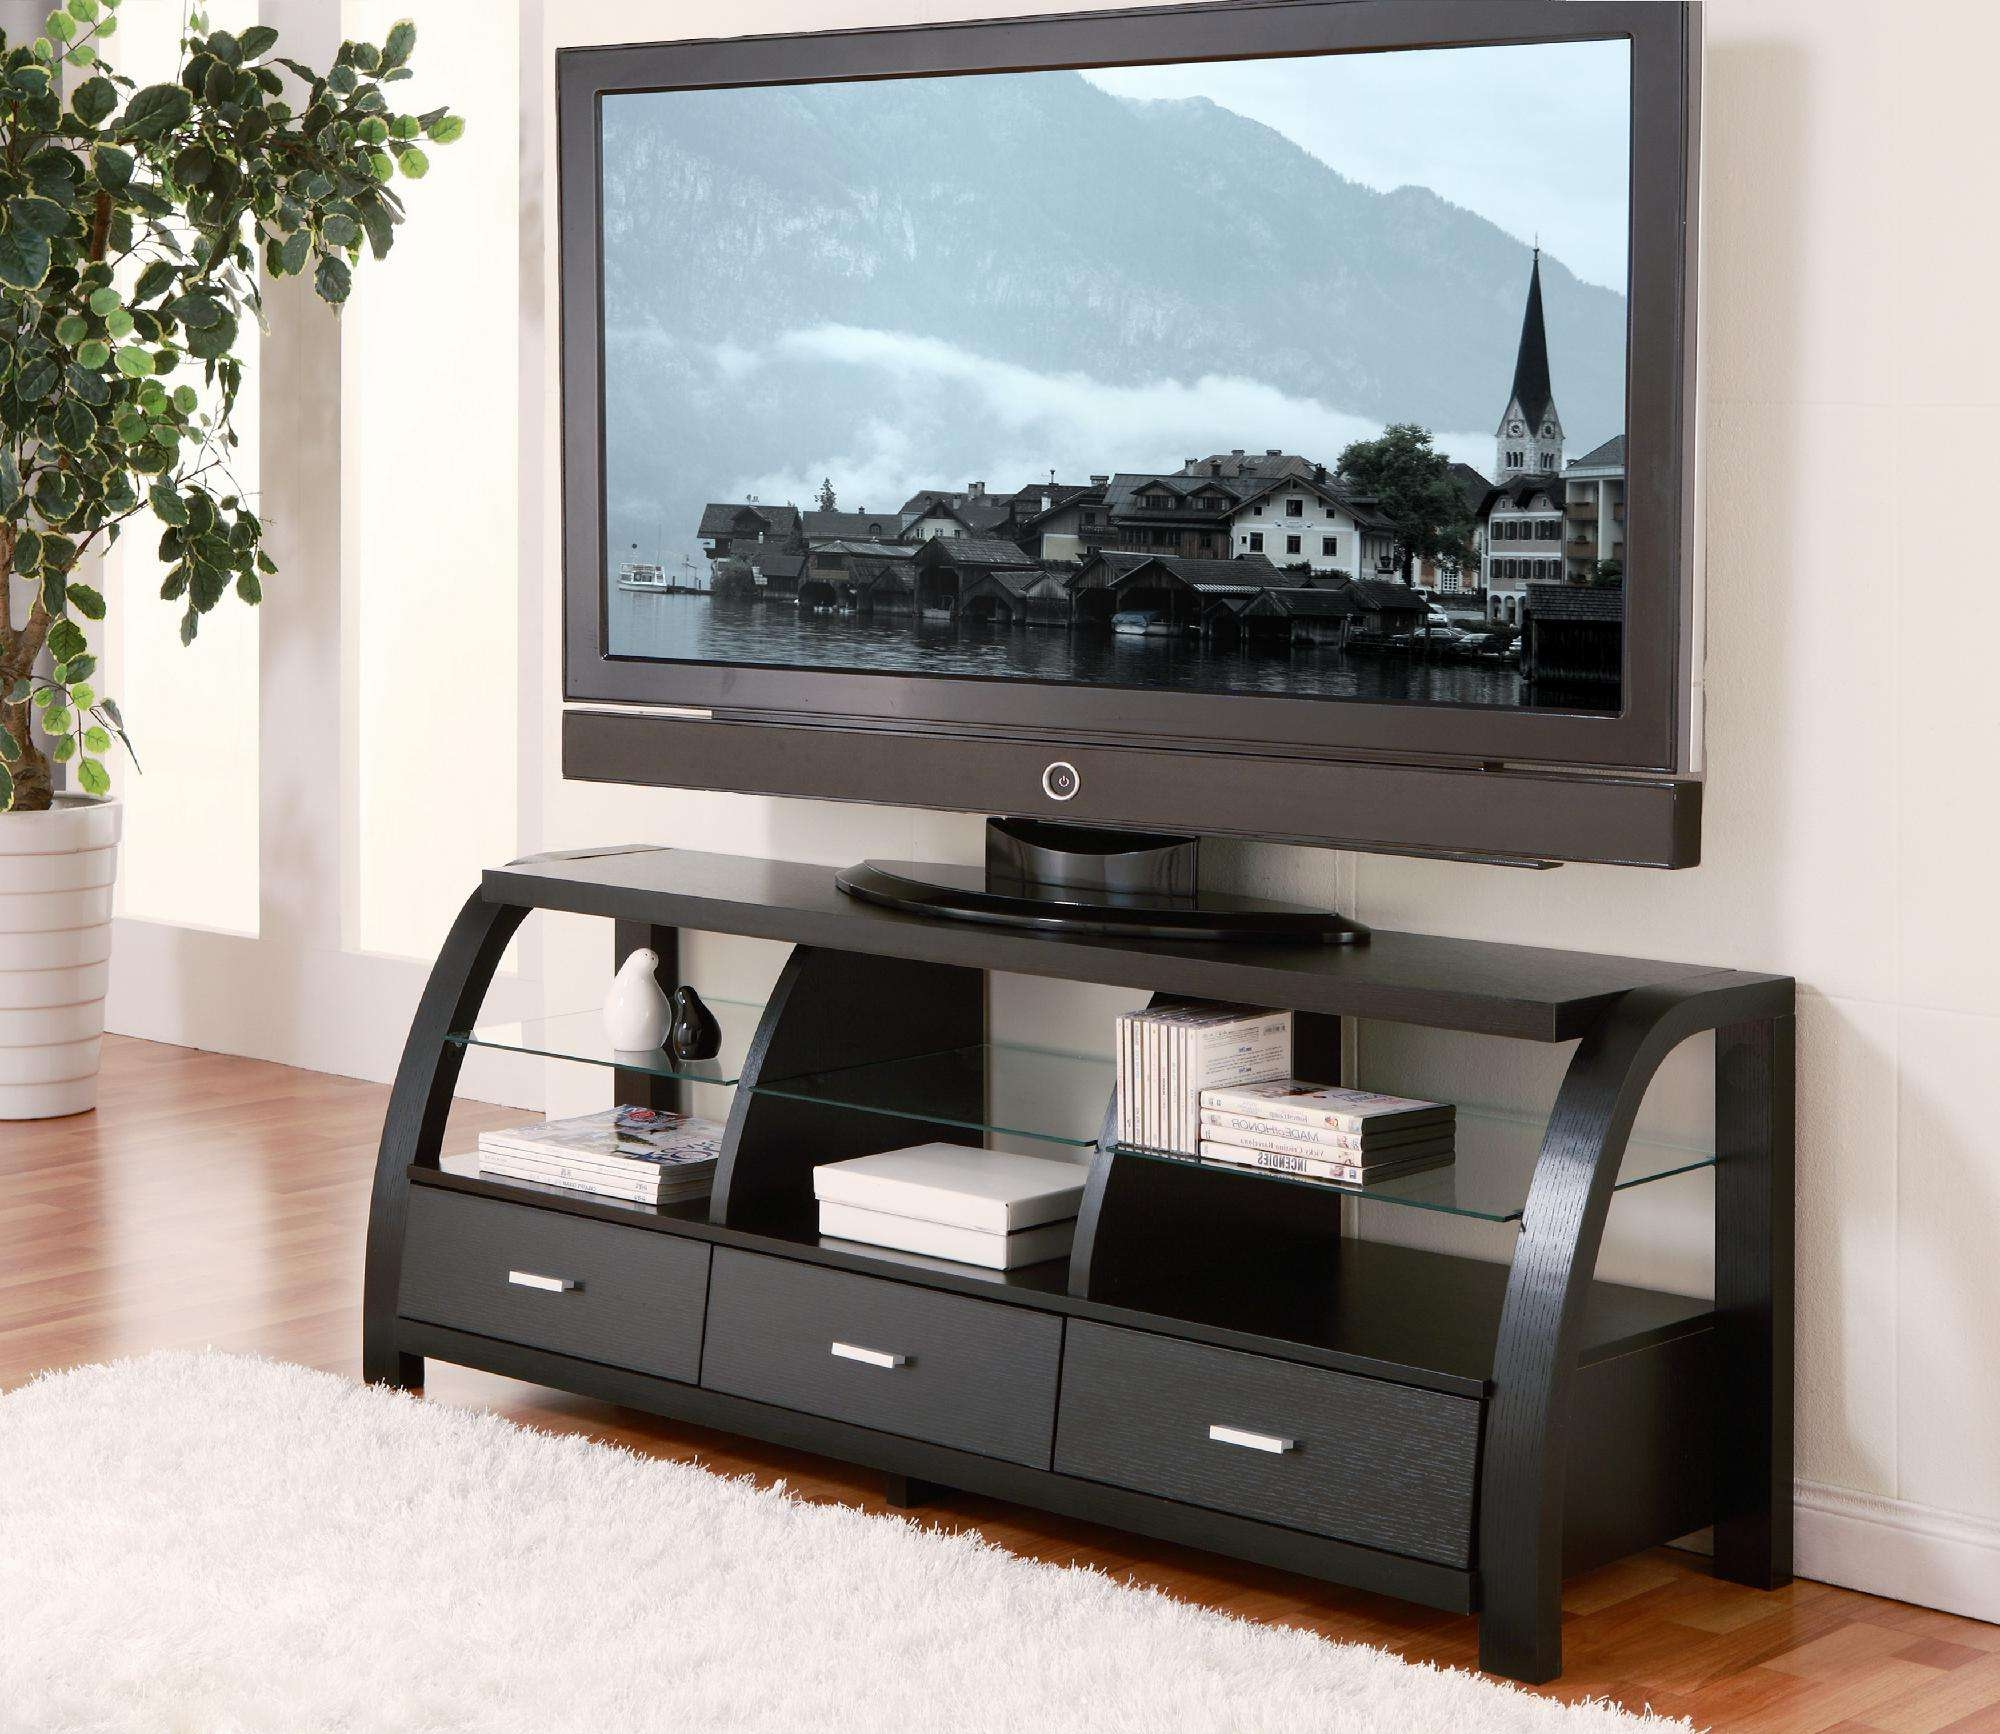 Unique 60 Inch Tv Stands 65 On Modern Home Decor Inspiration With In Modern 60 Inch Tv Stands (View 20 of 20)